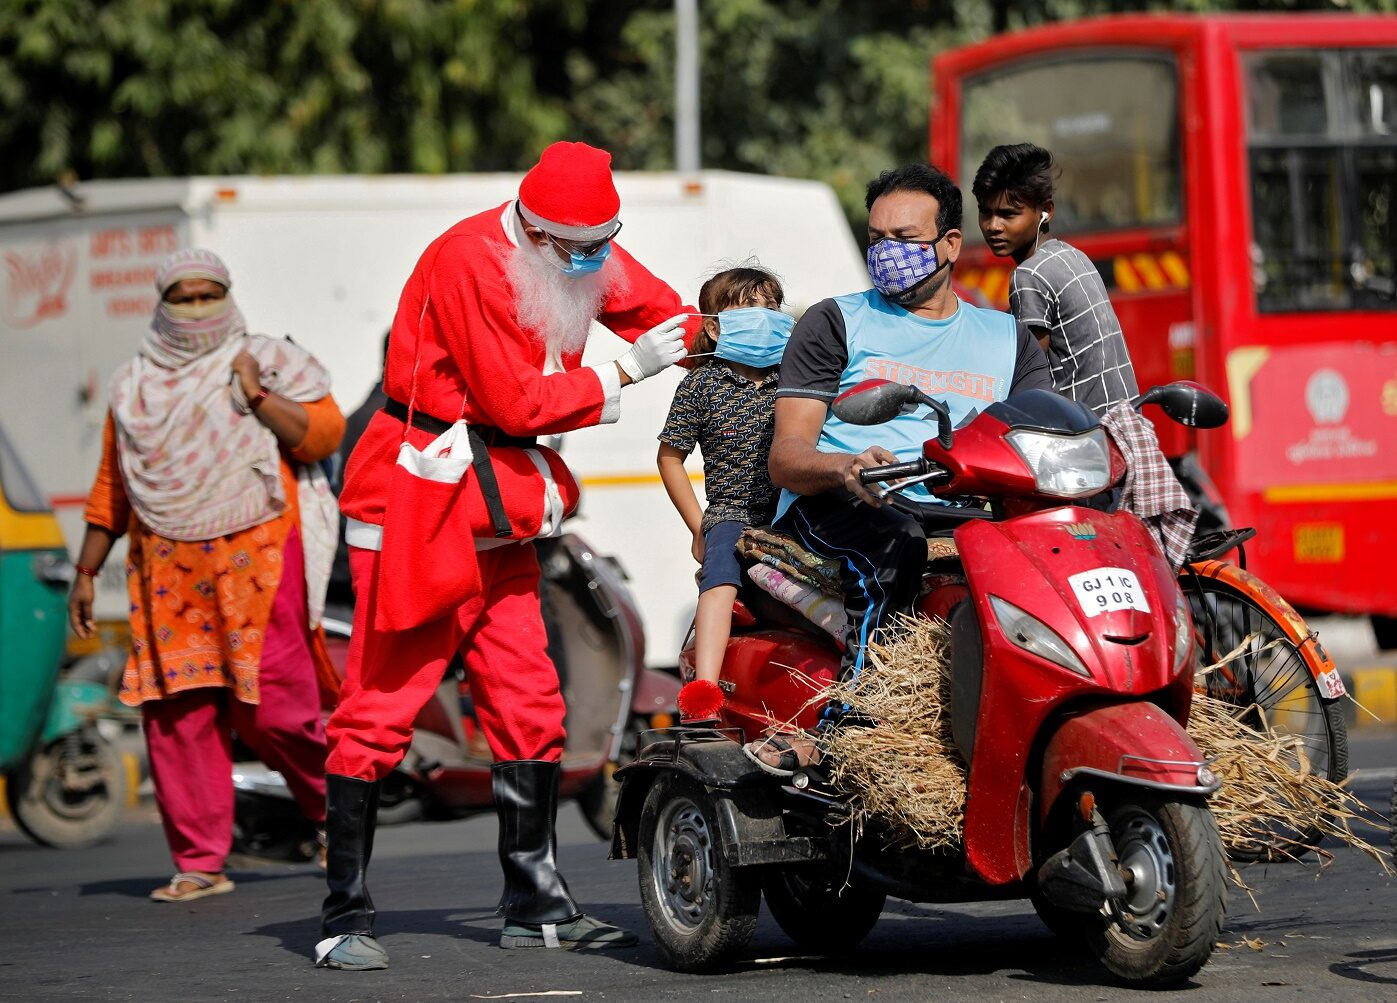 A man wearing a Santa Claus costume distributes free masks on an intersection, amidst the spread of the coronavirus disease (COVID-19), in Ahmedabad, India, December 18, 2020. REUTERS/Amit Dave